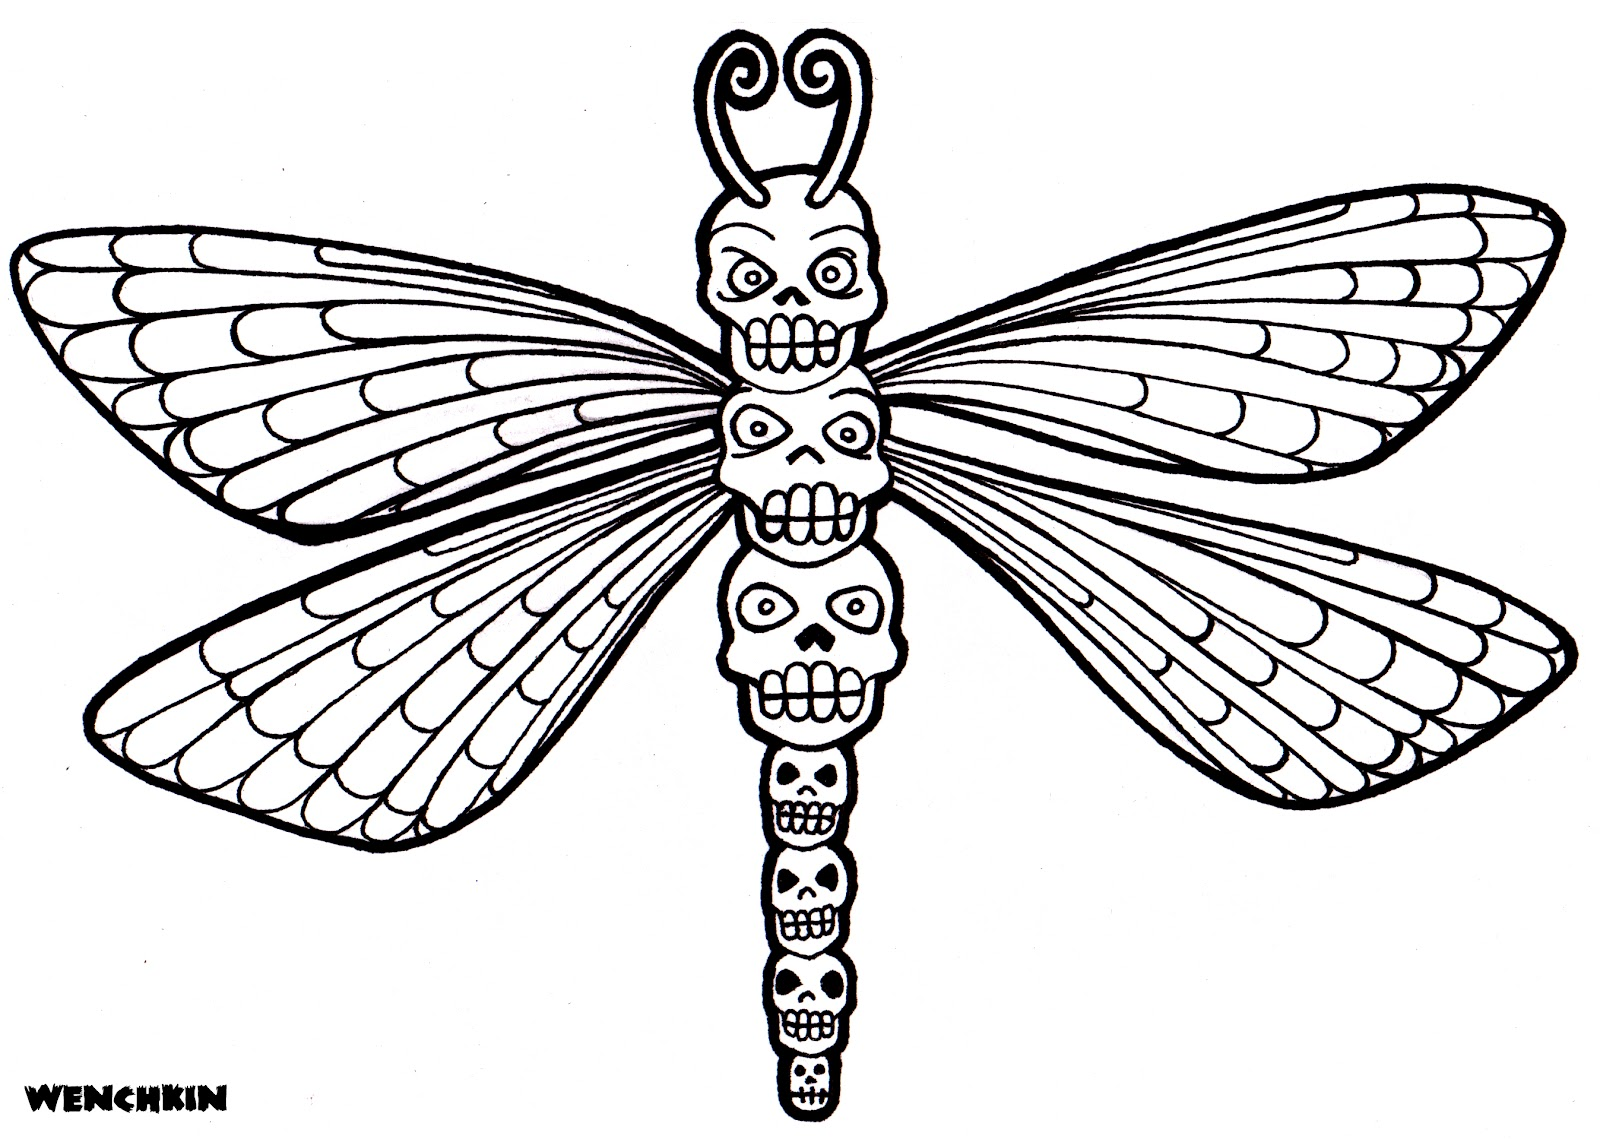 dragonfly coloring book pages - photo#34